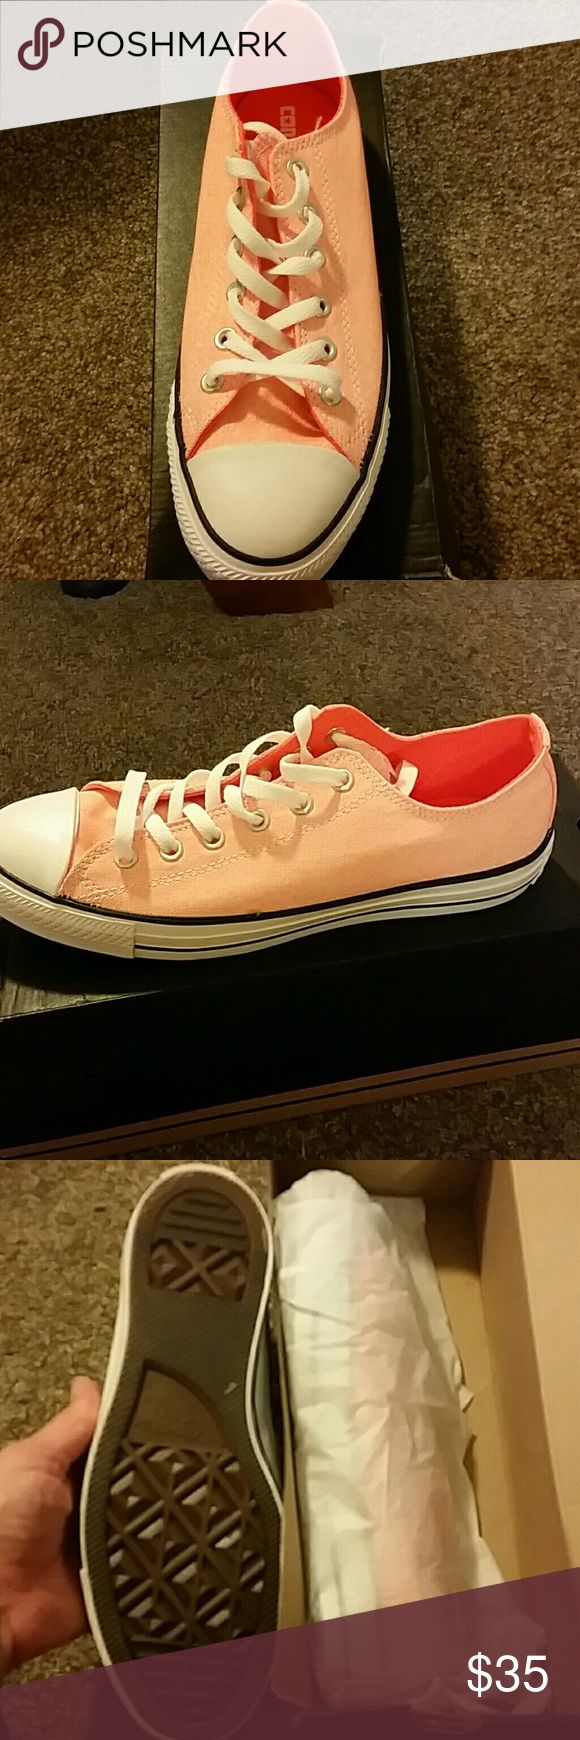 Converse neon orange women's 10 mens 8 These are new in their box. Color on box says neon orange. They're really pretty but their too small for me. Converse Shoes Athletic Shoes